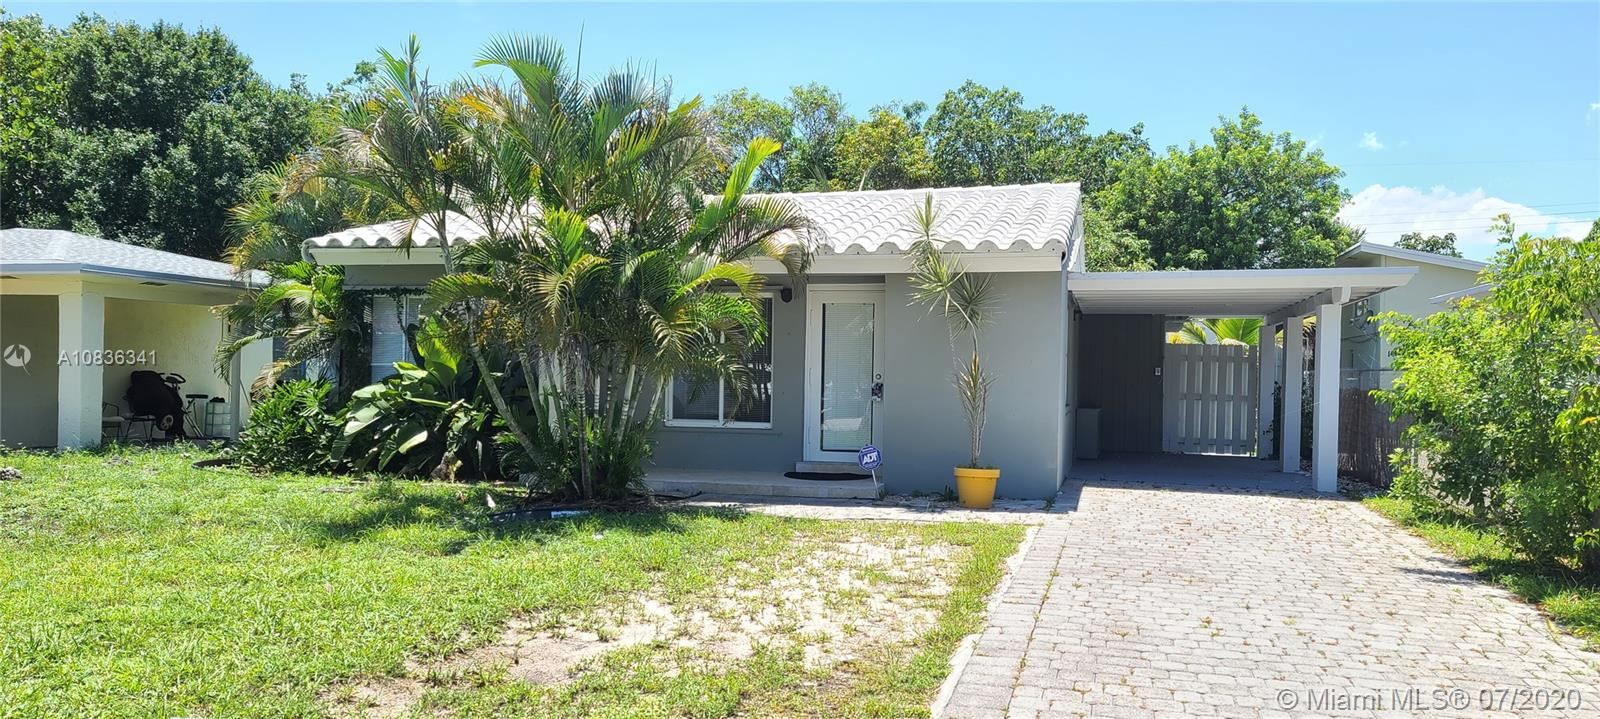 1413 NW 7th Ave, Fort Lauderdale, FL 33311 - #: A10836341